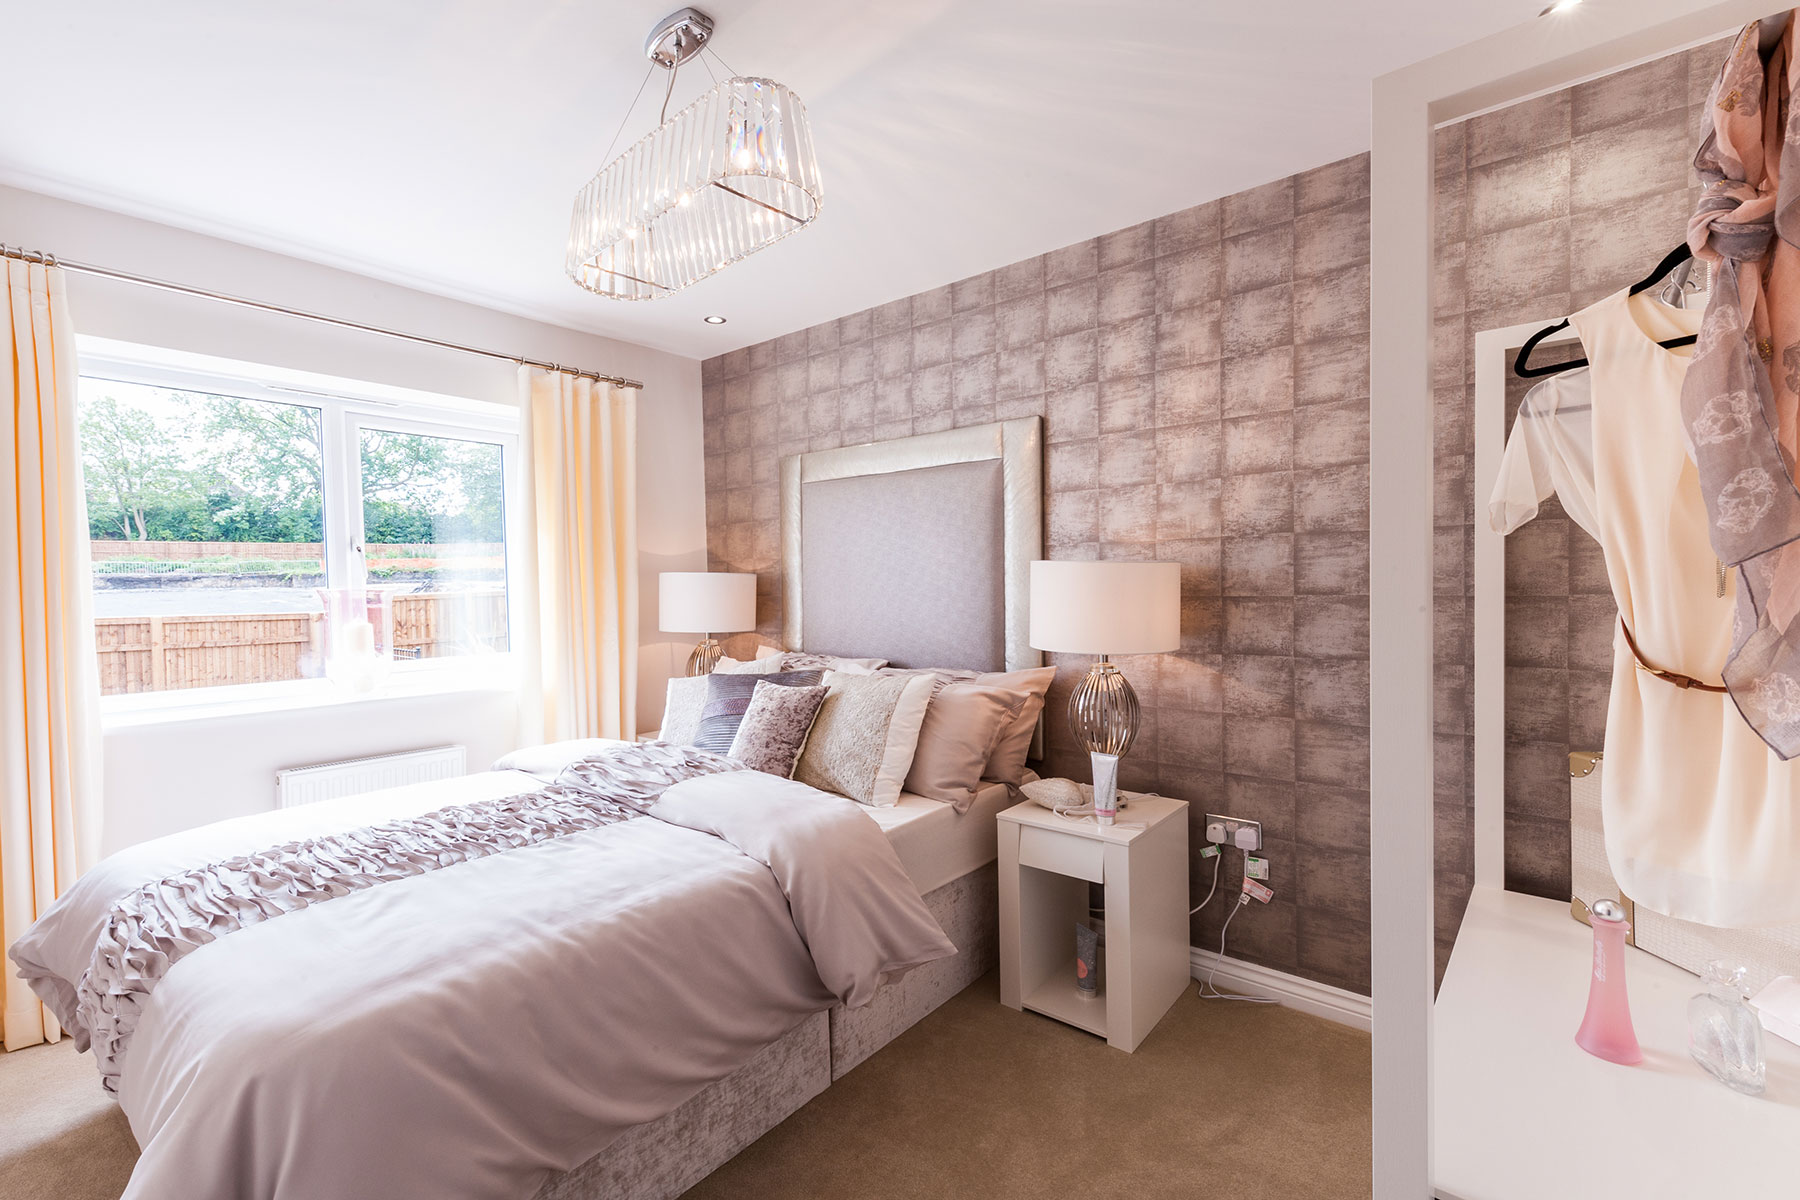 The Wilton - Showhome - 5 Bedroom Detached